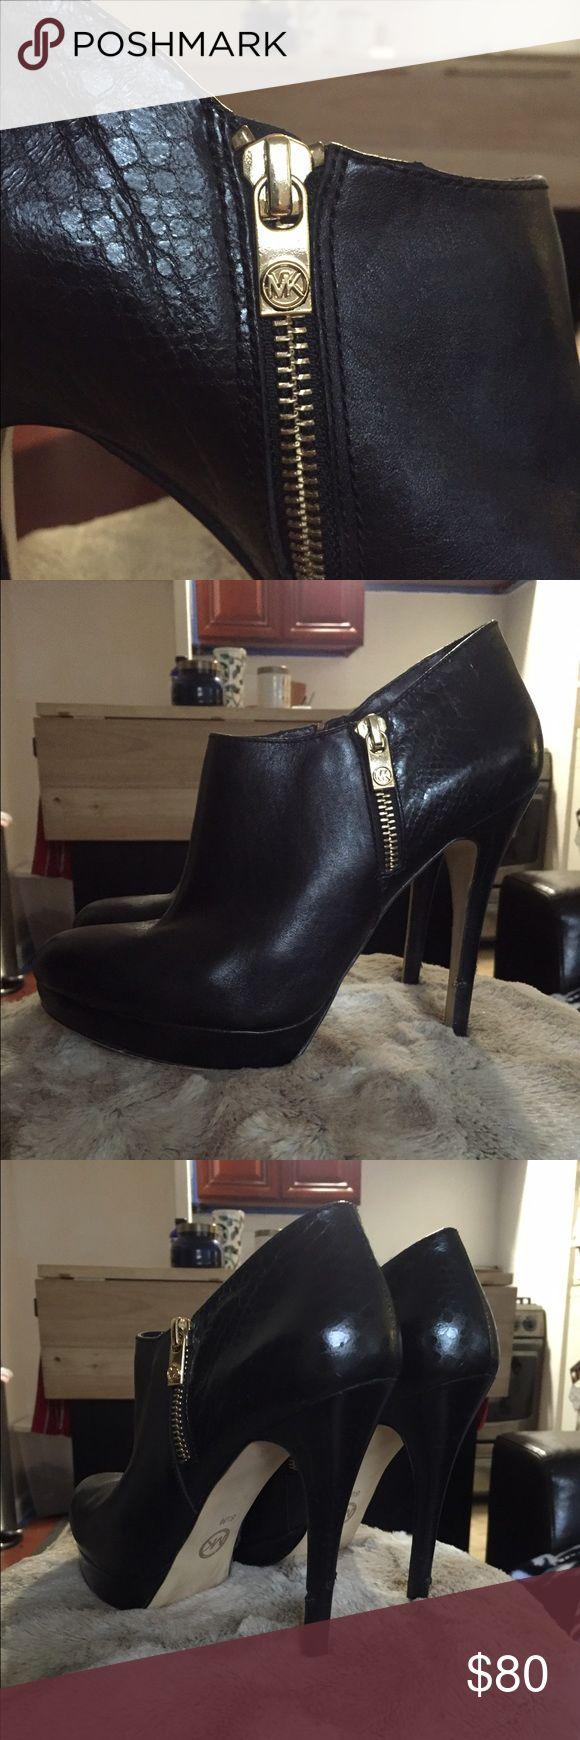 Michael Kors Black Leather Bootie Black leather Bootie. Low ankle. Good condition! 4 inch heel with small platform. Love these to death! Michael Kors Shoes Ankle Boots & Booties